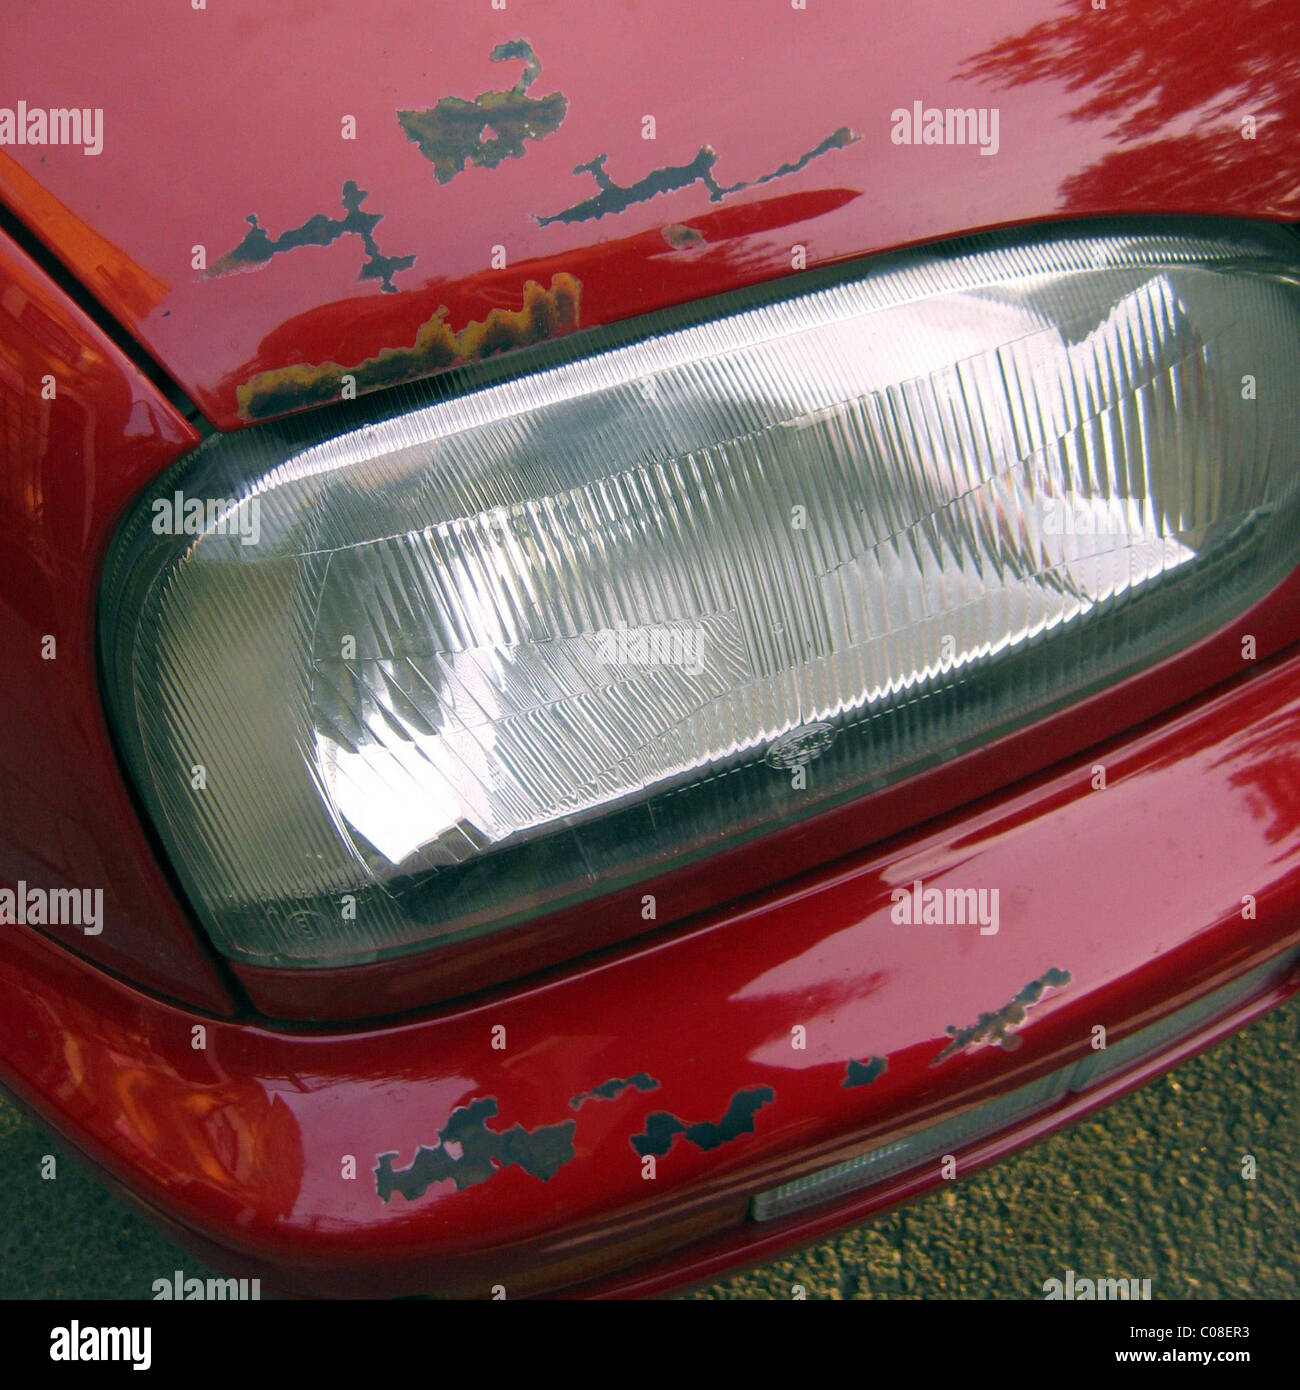 Make stickers for your car - Anti Theft Stickers These Rust And Scratch Stickers Are Designed To Make Your Precious Bike Car Look Rusted And Scratched So